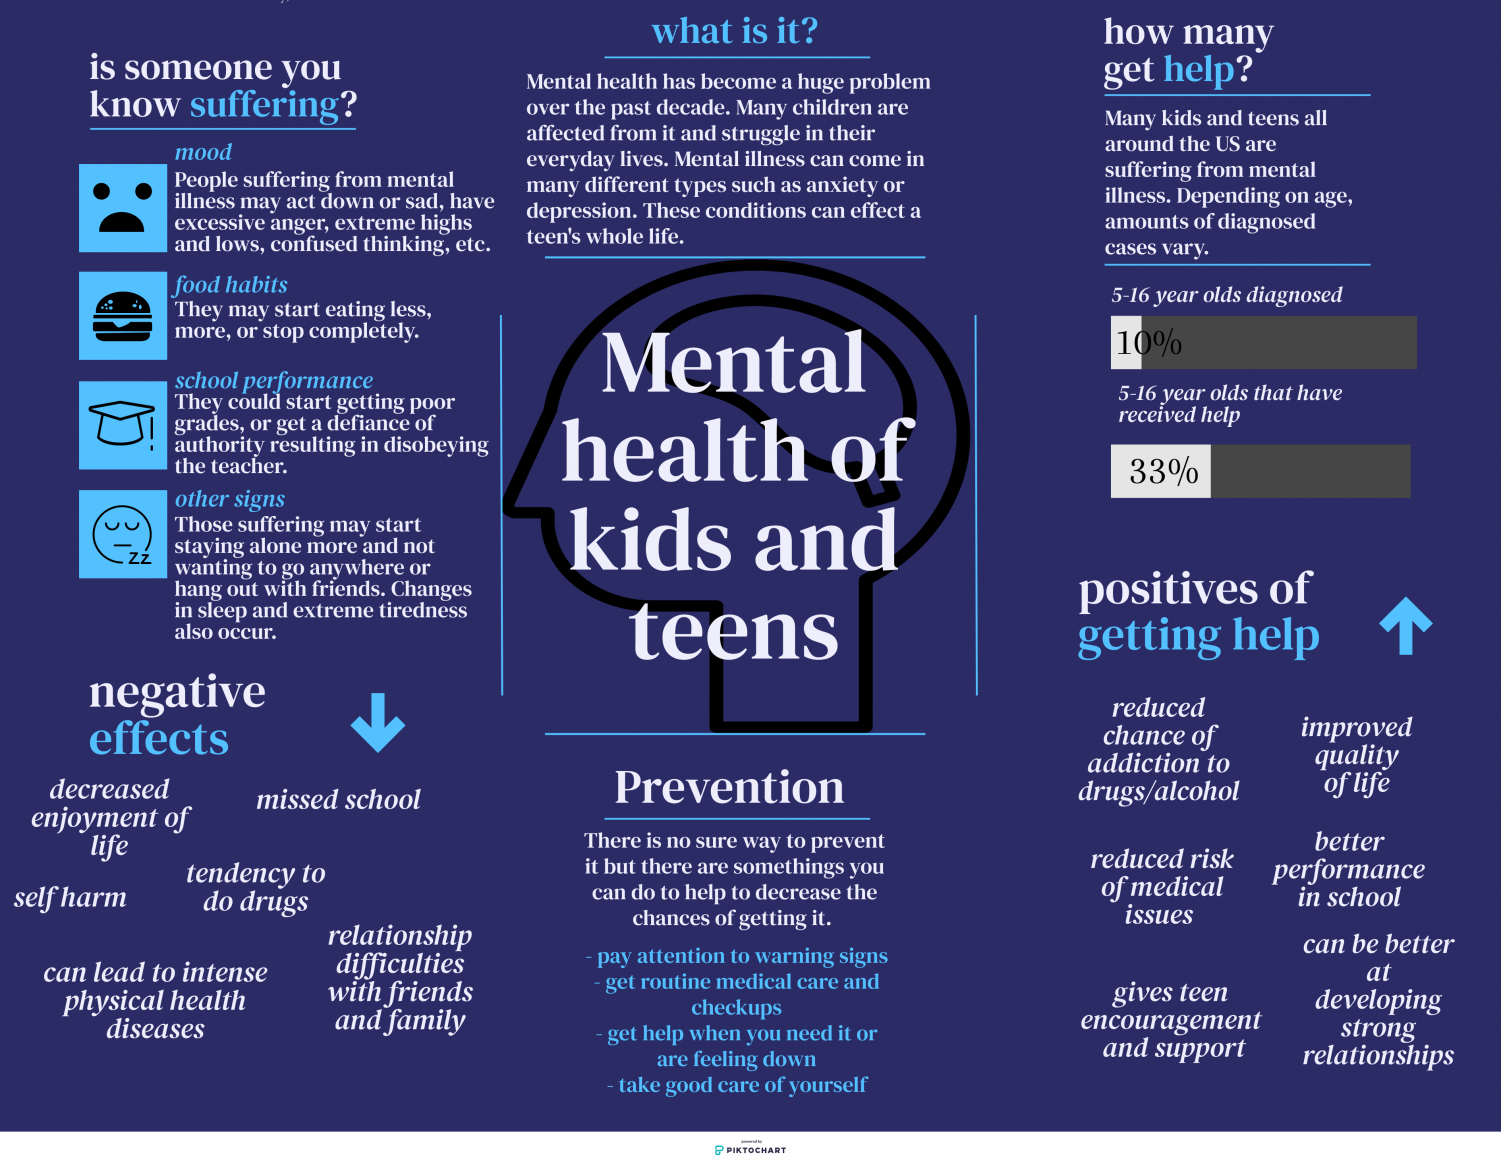 Each year, a large amount of kids and teens are affected by mental health issues. This number has increased majorly over the past decade. This info graphic shows the important information that should be known about mental health. It shows the symptoms, effects, prevention, and other facts about mental illness.